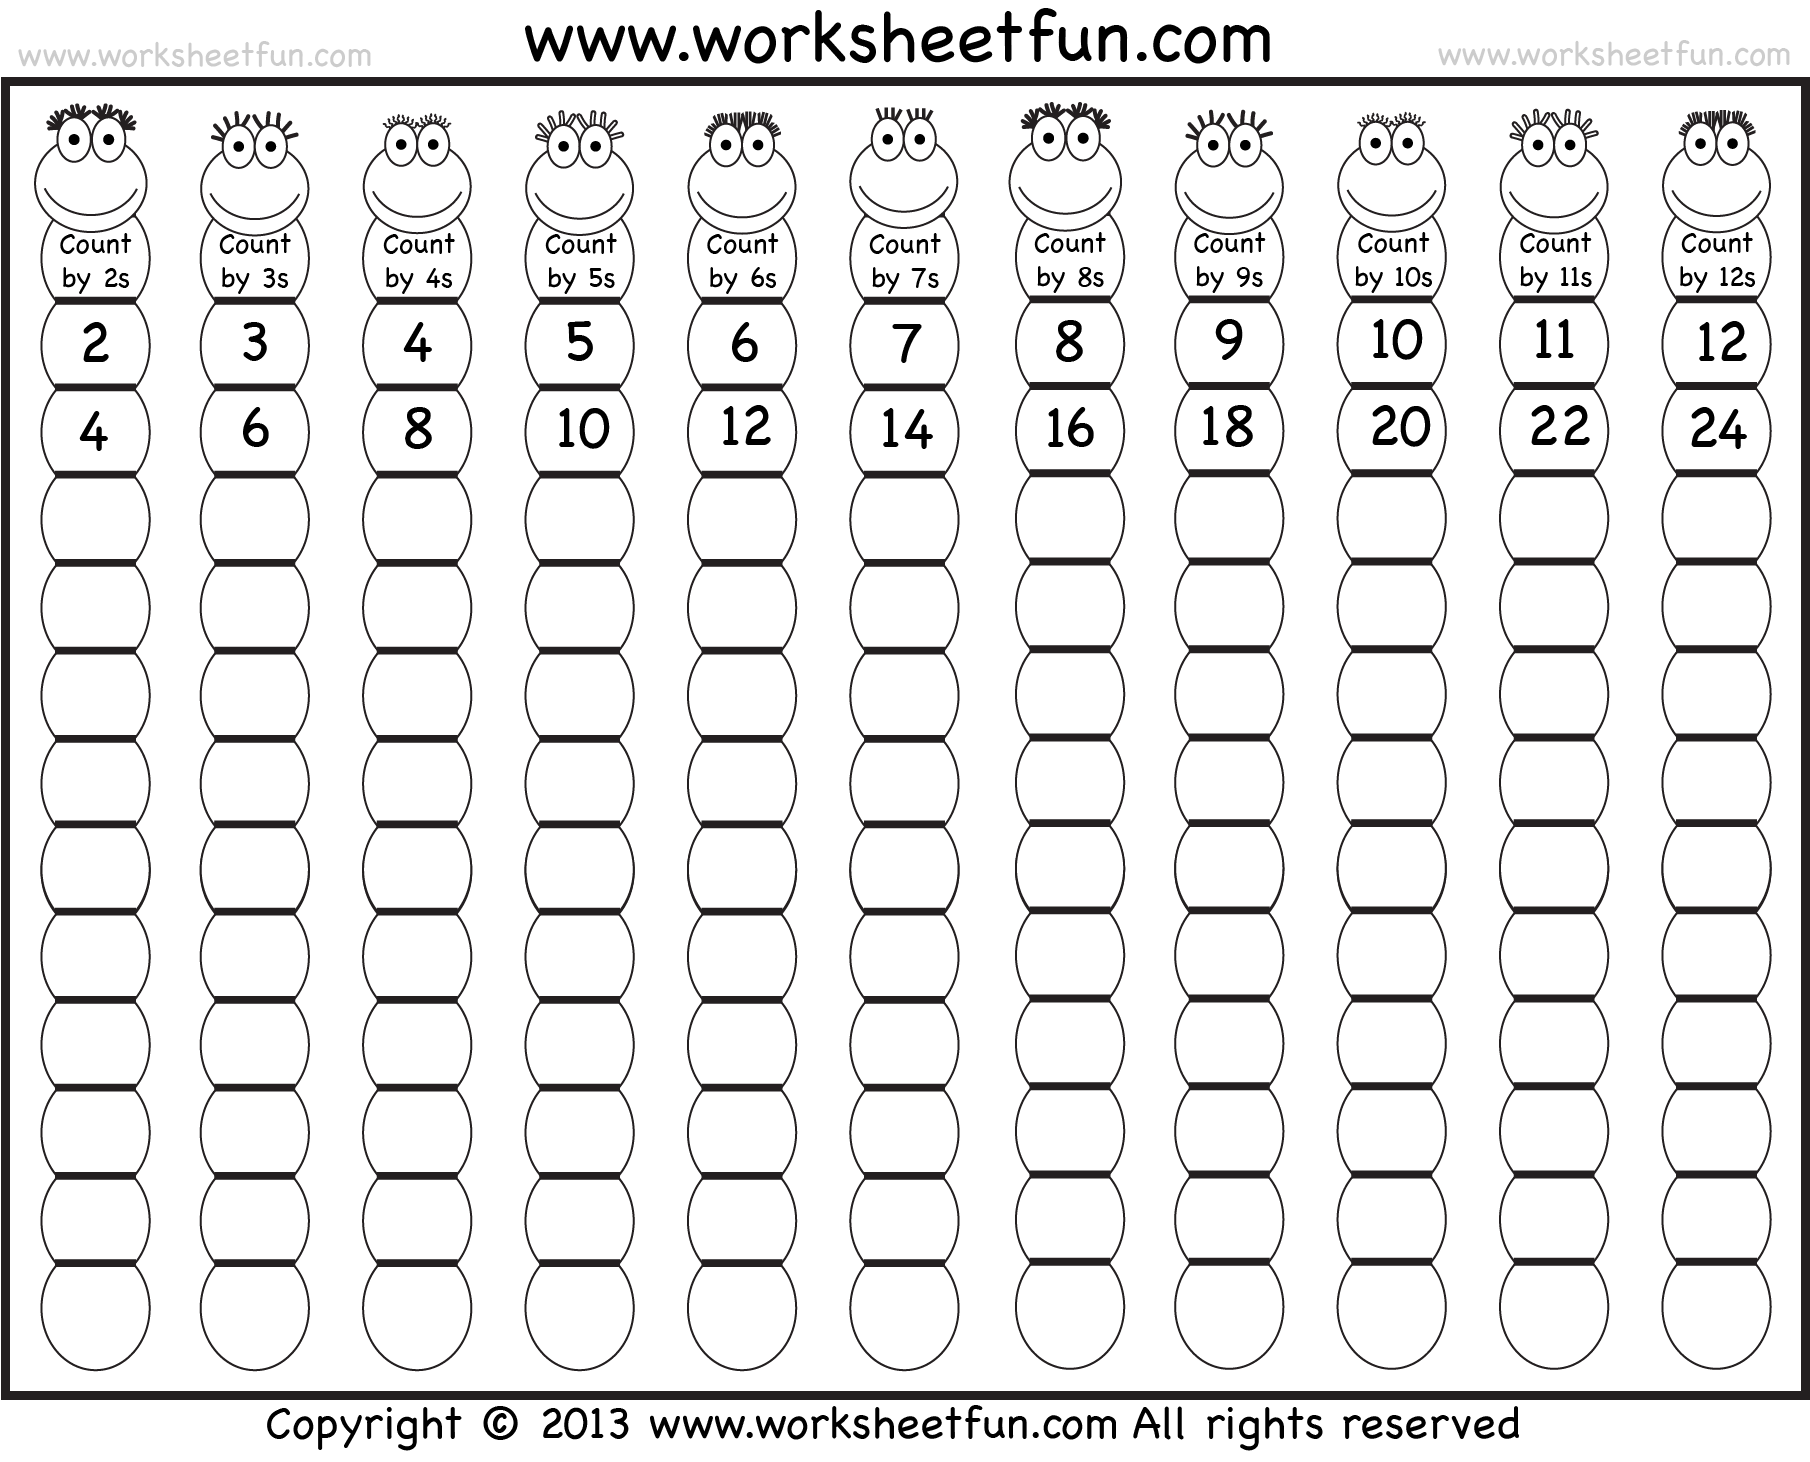 skip counting | Homeschooling | Pinterest | Skip counting, Math and ...